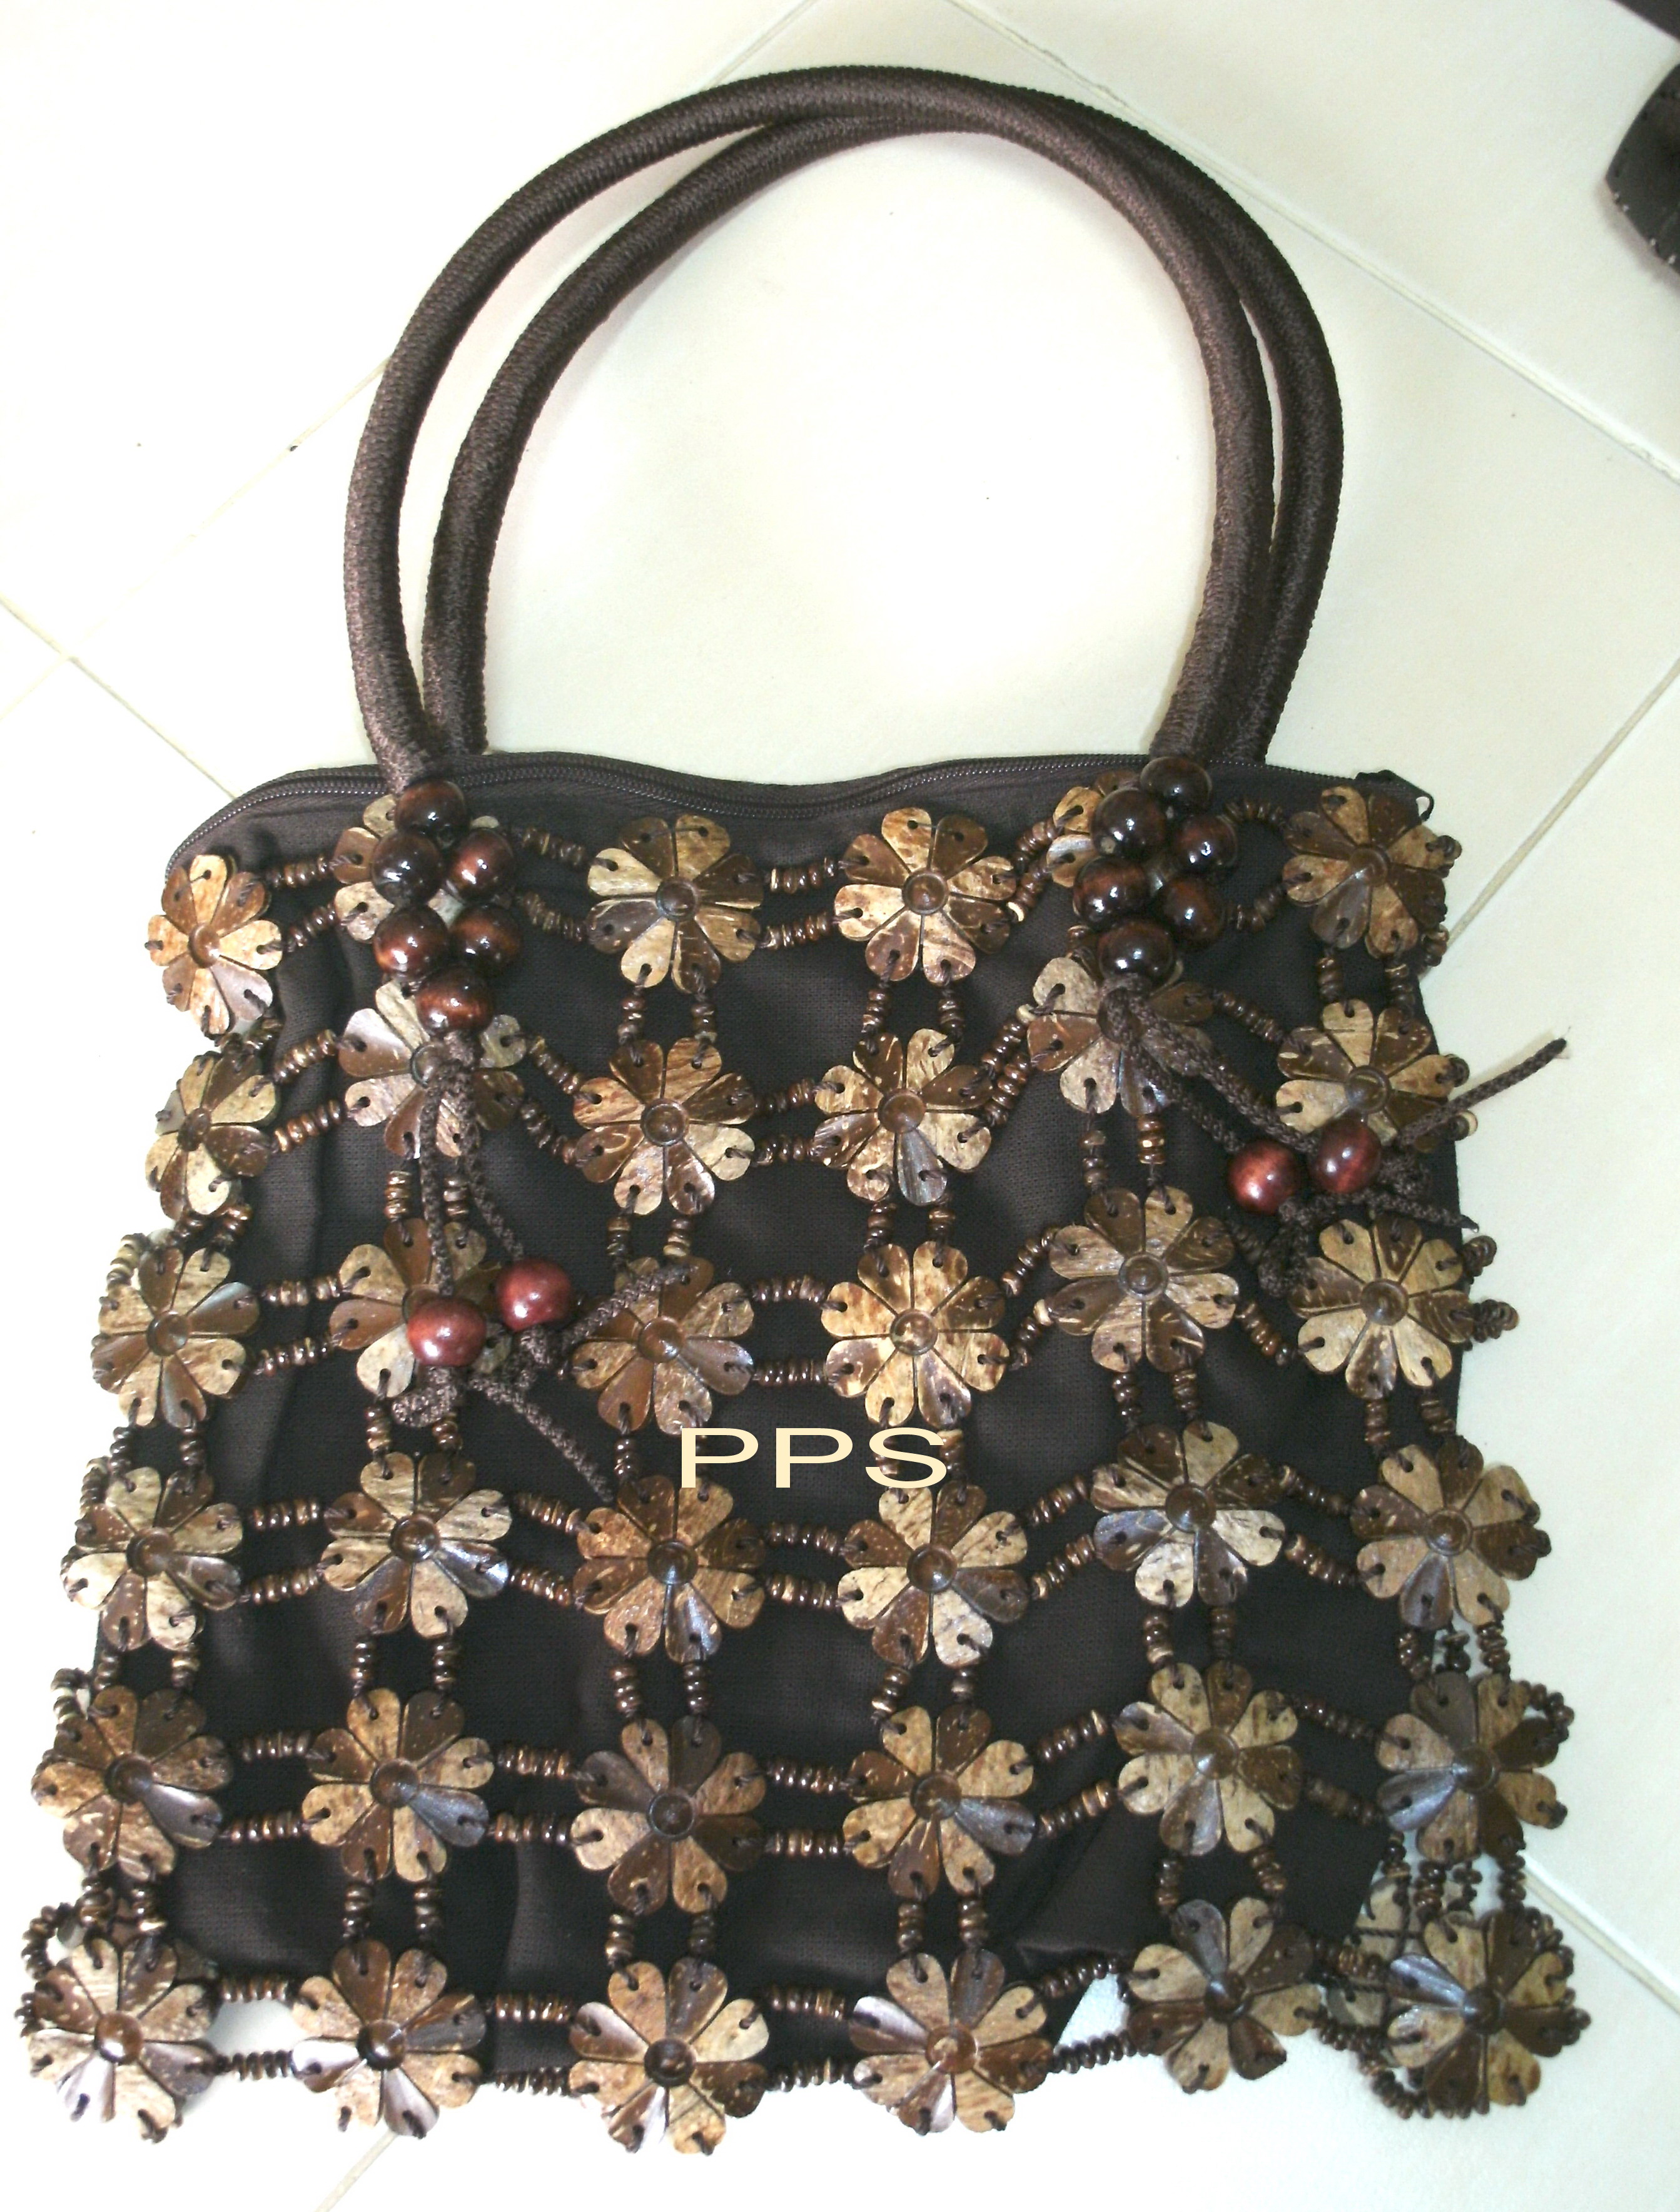 Coconut Shell Bags 0628